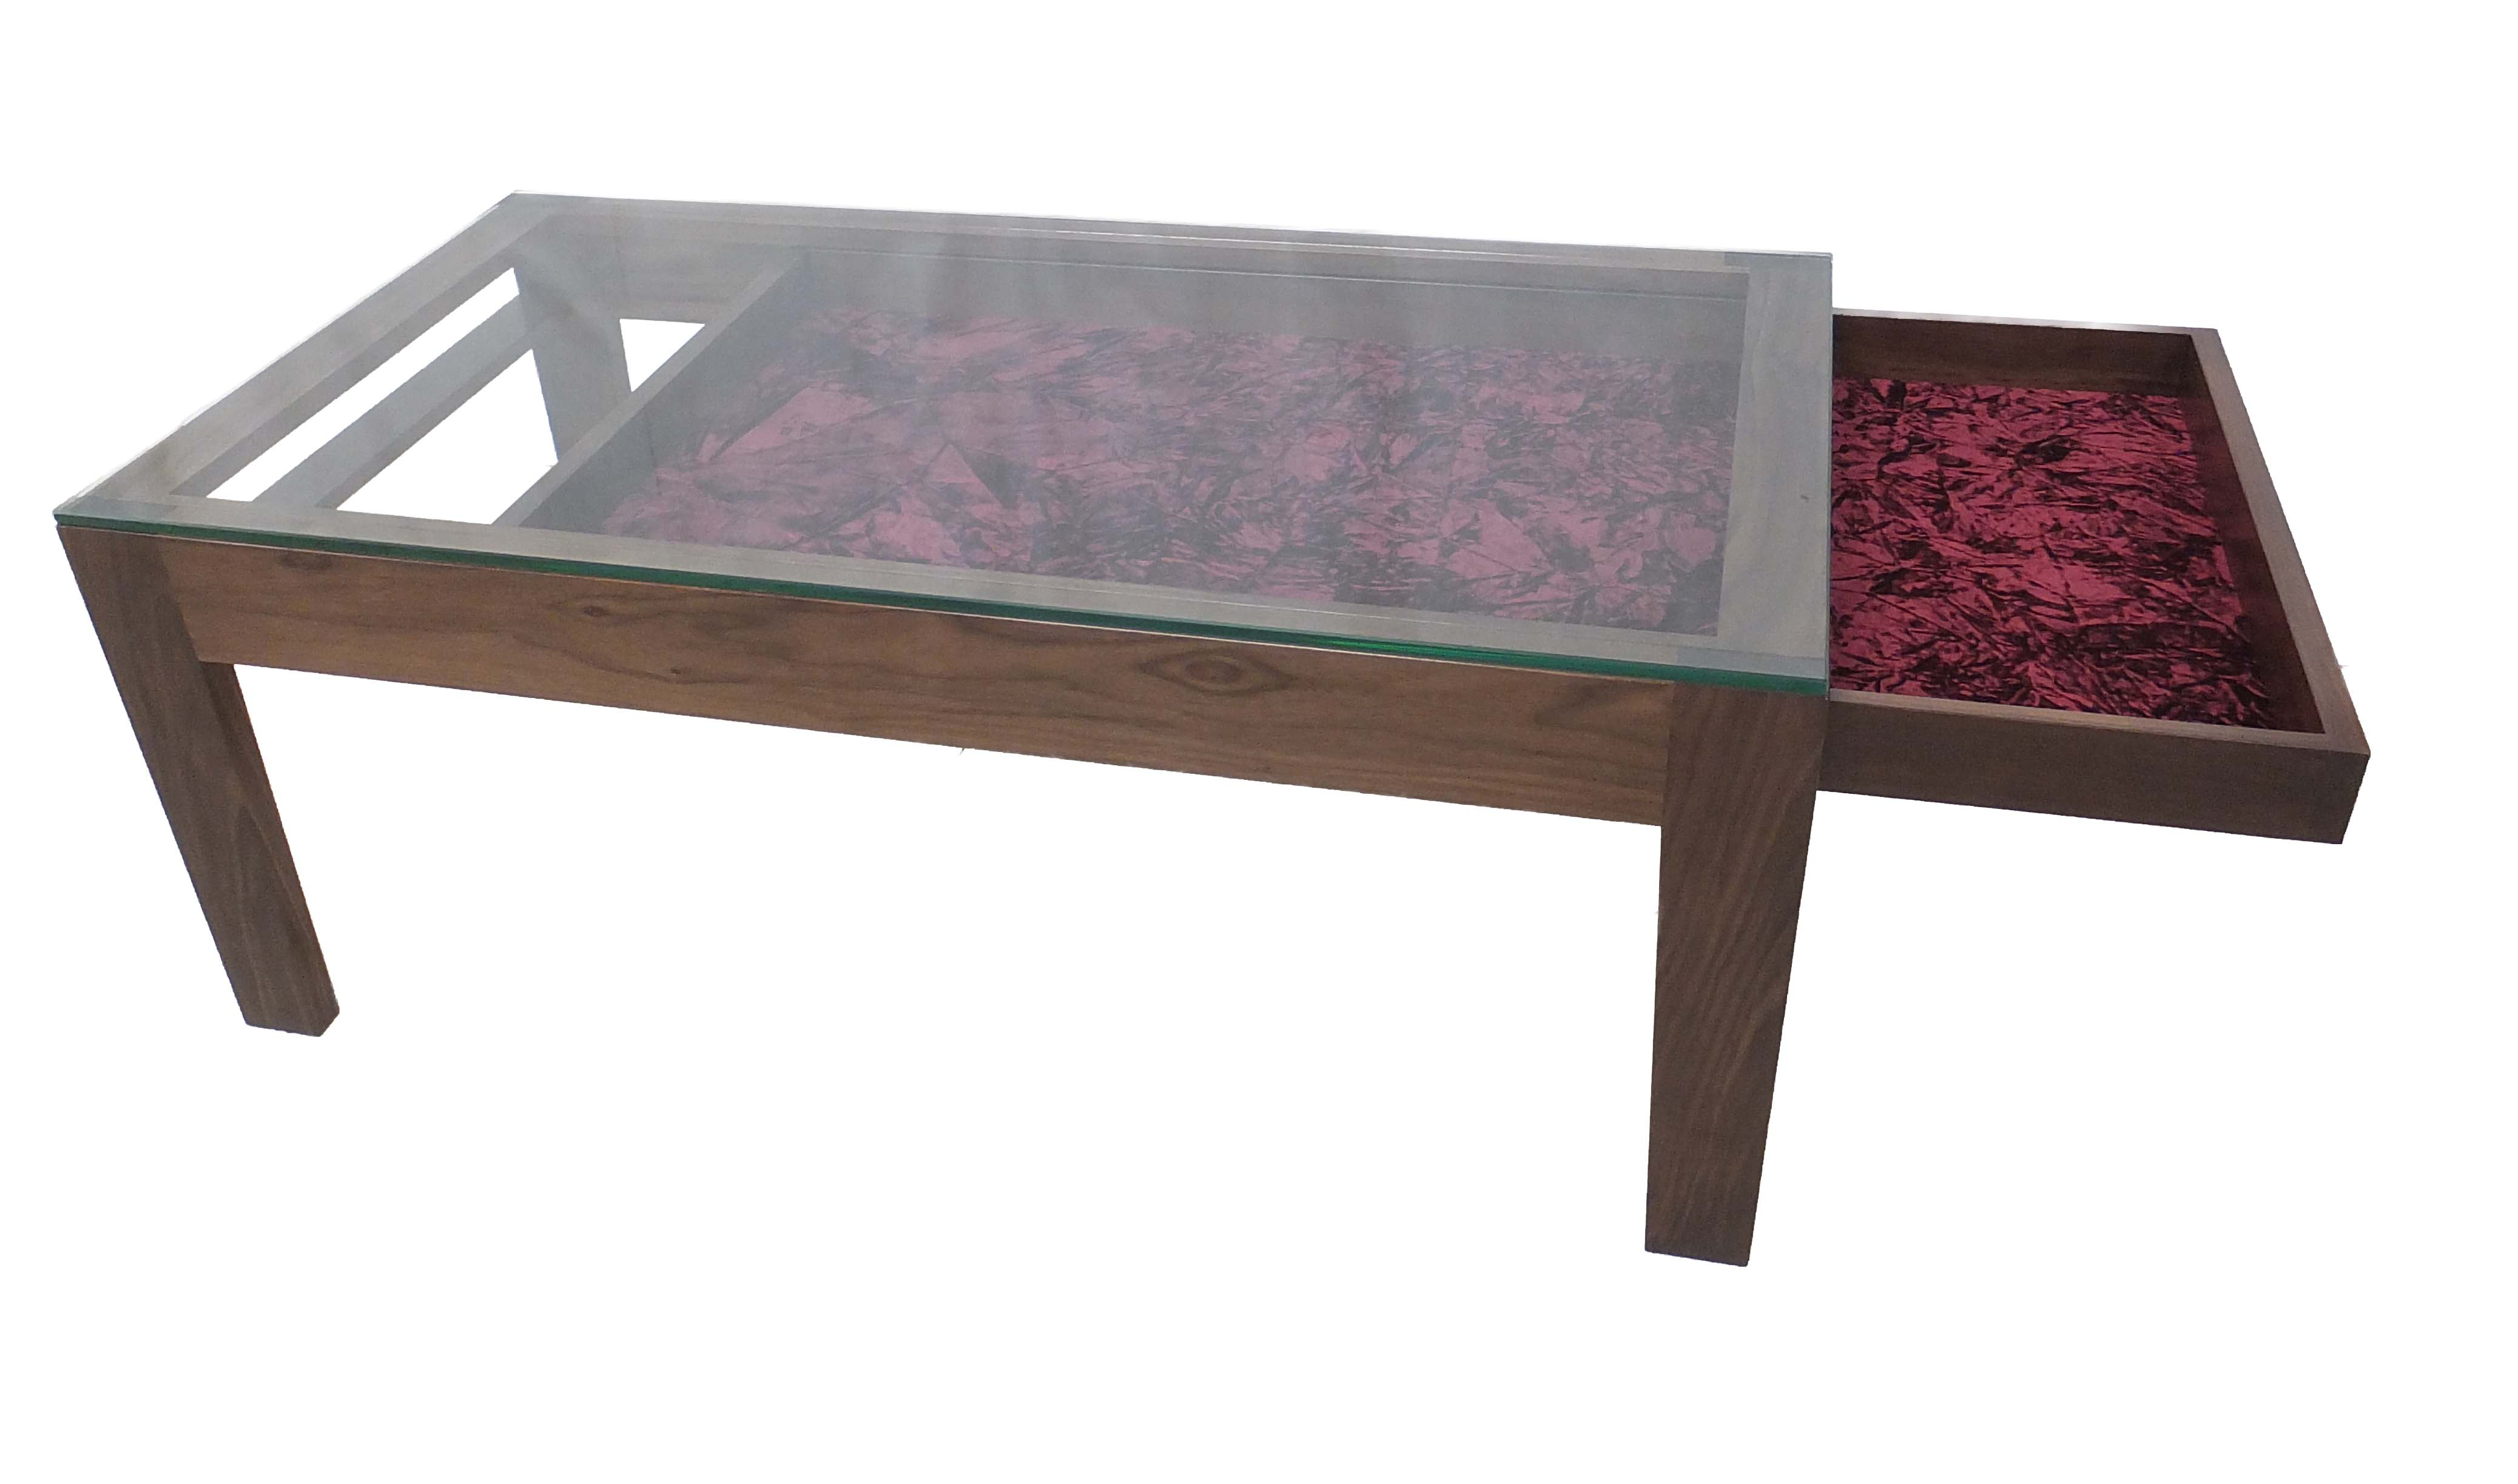 Nesting Coffee Tables Ikea With Glass Top Made From Solid American Walnut With 10mm Toughened Glass Top And Sliding Drawer Lined With Crushed Velvet (Image 9 of 9)